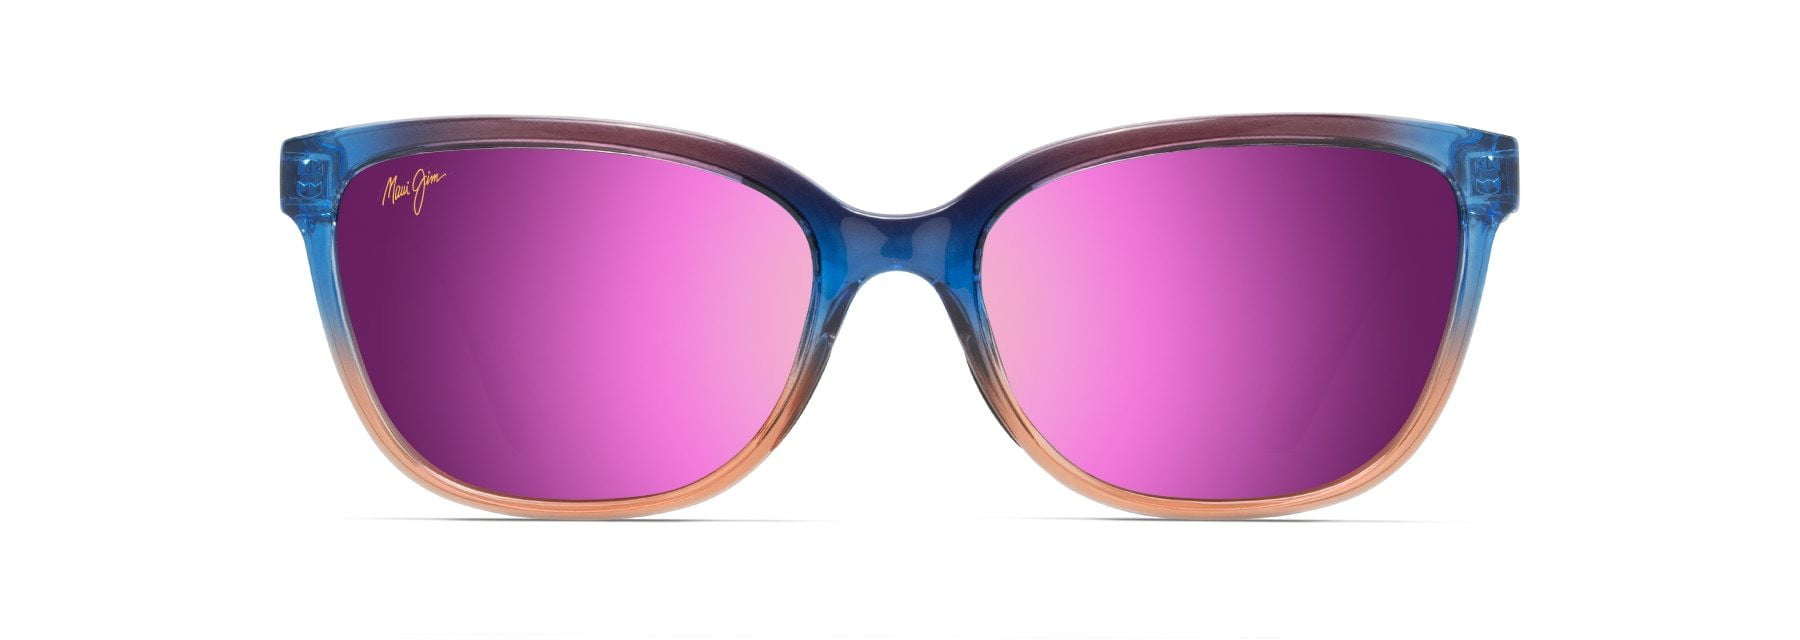 MyMaui Honi MM758-023 Sunglasses